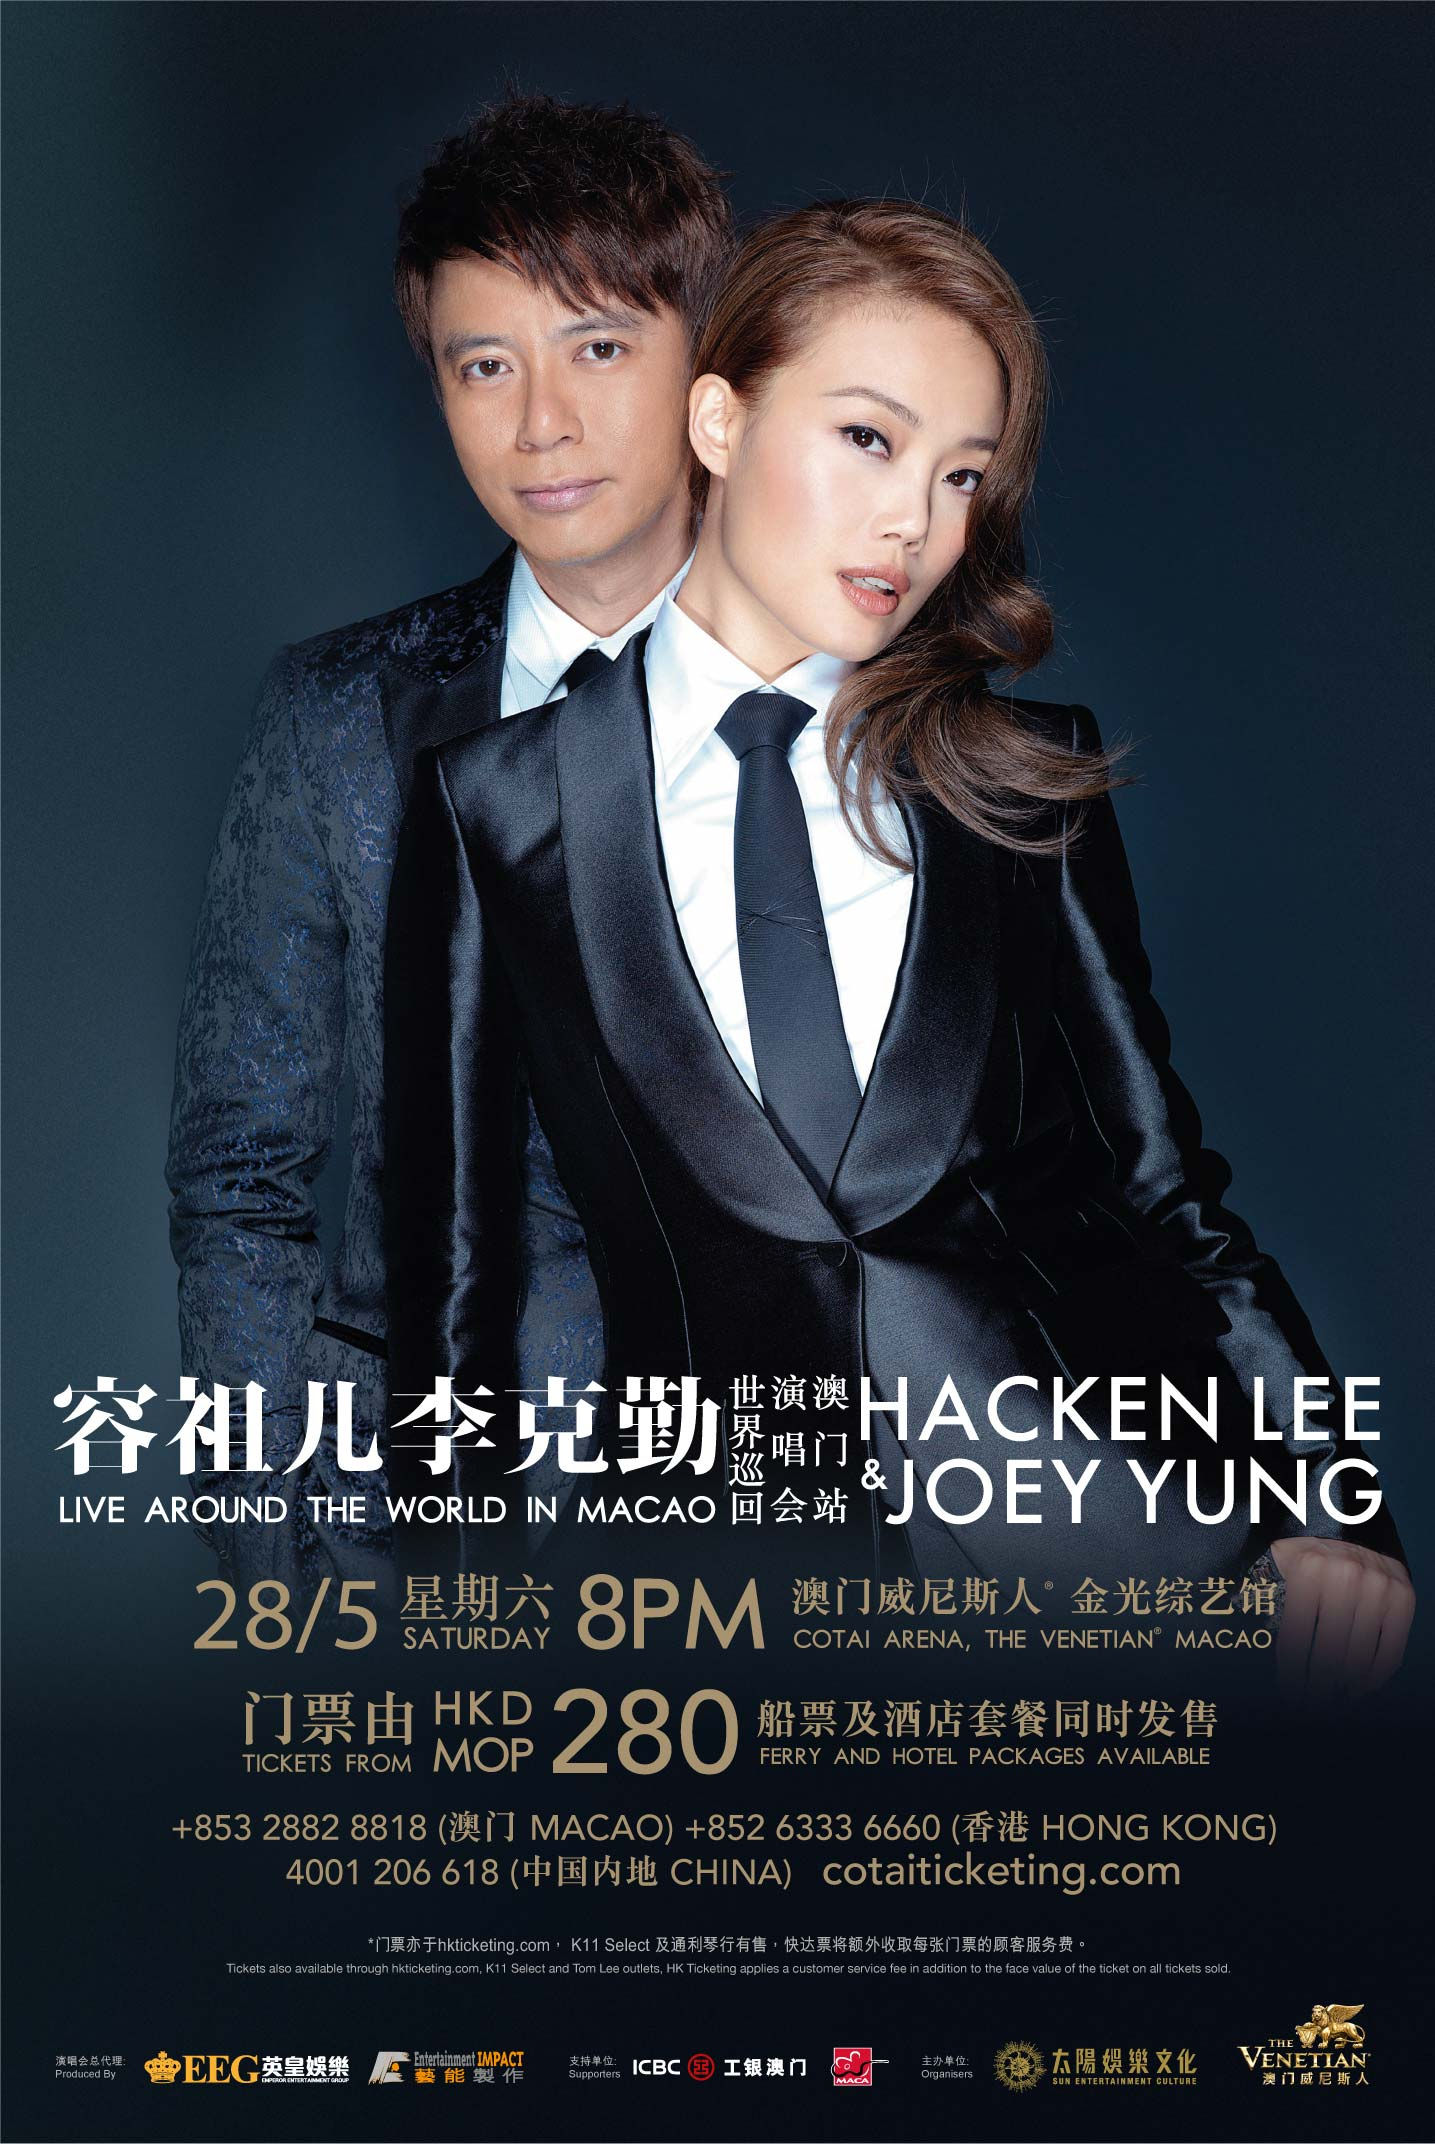 Superstars Hacken Lee and Joey Yung  to Bring Their Star Power to The Venetian Macao